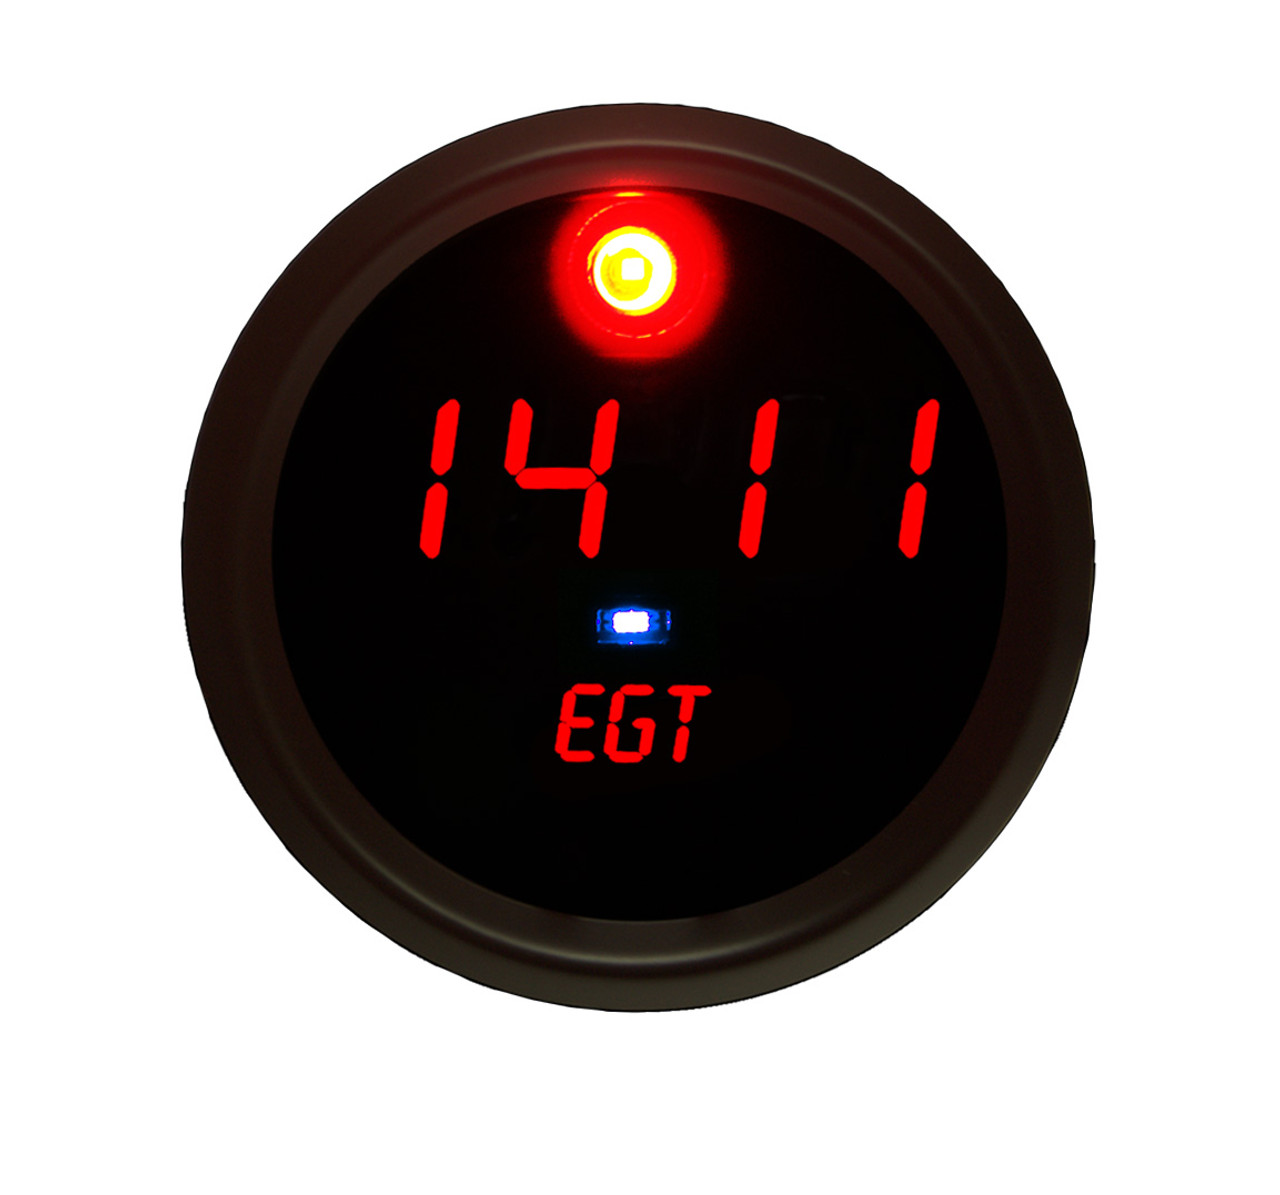 Exhaust Gas Temperature (EGT) Programmable Co-Pilot Gauge Black Bezel - C9017 Worrying about spikes in exhaust temperature can now be a thing of the past with the Intellitronix Exhaust Gas Temperature Programmable Co-Pilot Gauge. The EGT Co-Pilot Gauge automatically detects and alerts you when your EGT level surpasses your custom, pre-set temperature range, allowing you to worry less about constantly monitoring your gauges and focus more on doing what you love: driving!  The EGT Programmable Co-Pilot Gauge is microprocessor-controlled and reads in one-degree increments with spot-on accuracy!  Designed to work with any vehicle! It is accuracy, elegance, and intelligence all in one breathtaking display!